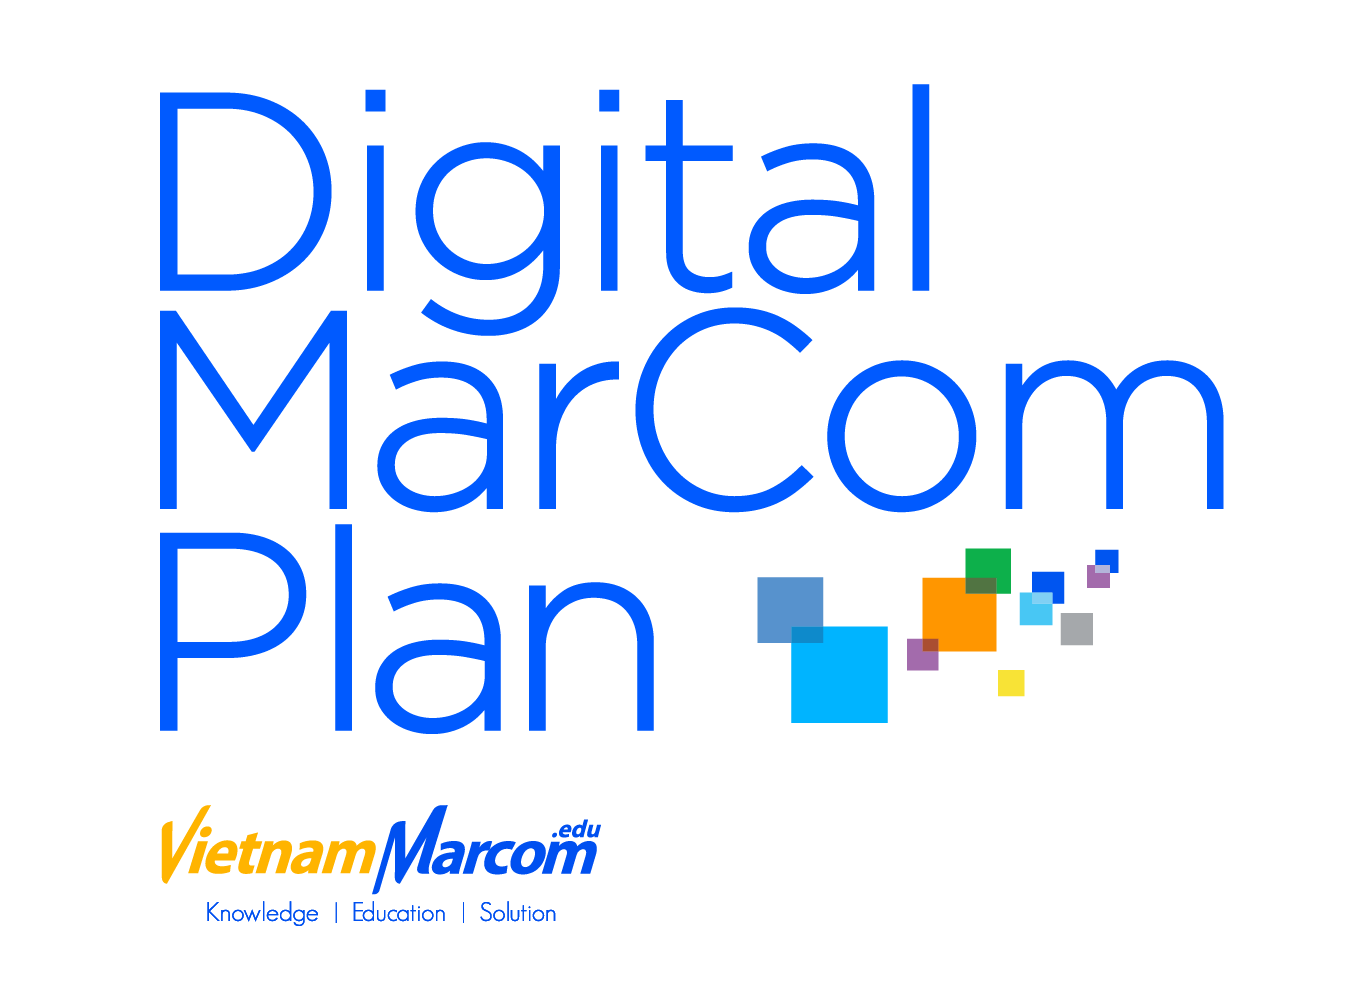 digitalMarcom-plan